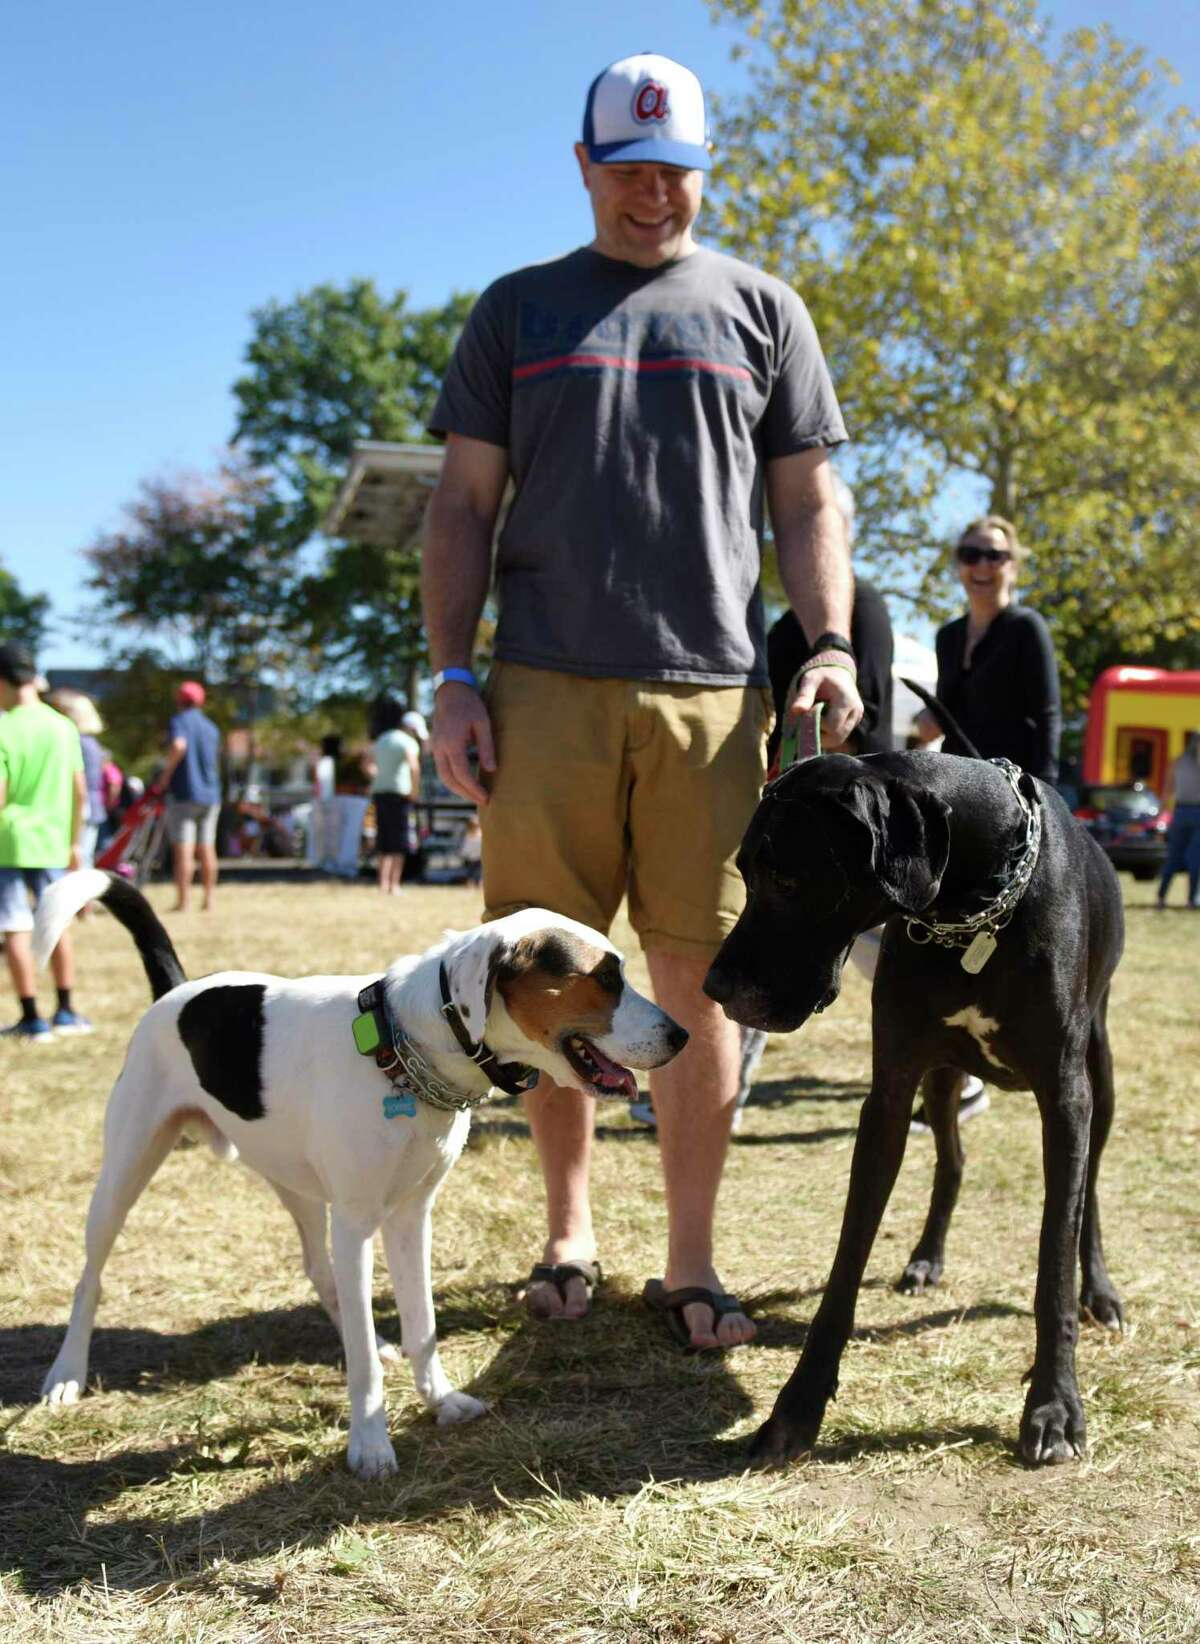 Greenwich's Adam Tubbs walks his adopted dog Hobbes, left, and Great Dane Zelda at Adopt-A-Dog's annual Puttin' on the Dog fundraising event at Roger Sherman Baldwin Park in Greenwich, Conn. Sunday, Sept. 29, 2019. Hundreds of humans and their canine companions enjoyed dog demonstrations and competitions, pet vendors on display, children's activities, food trucks and more.